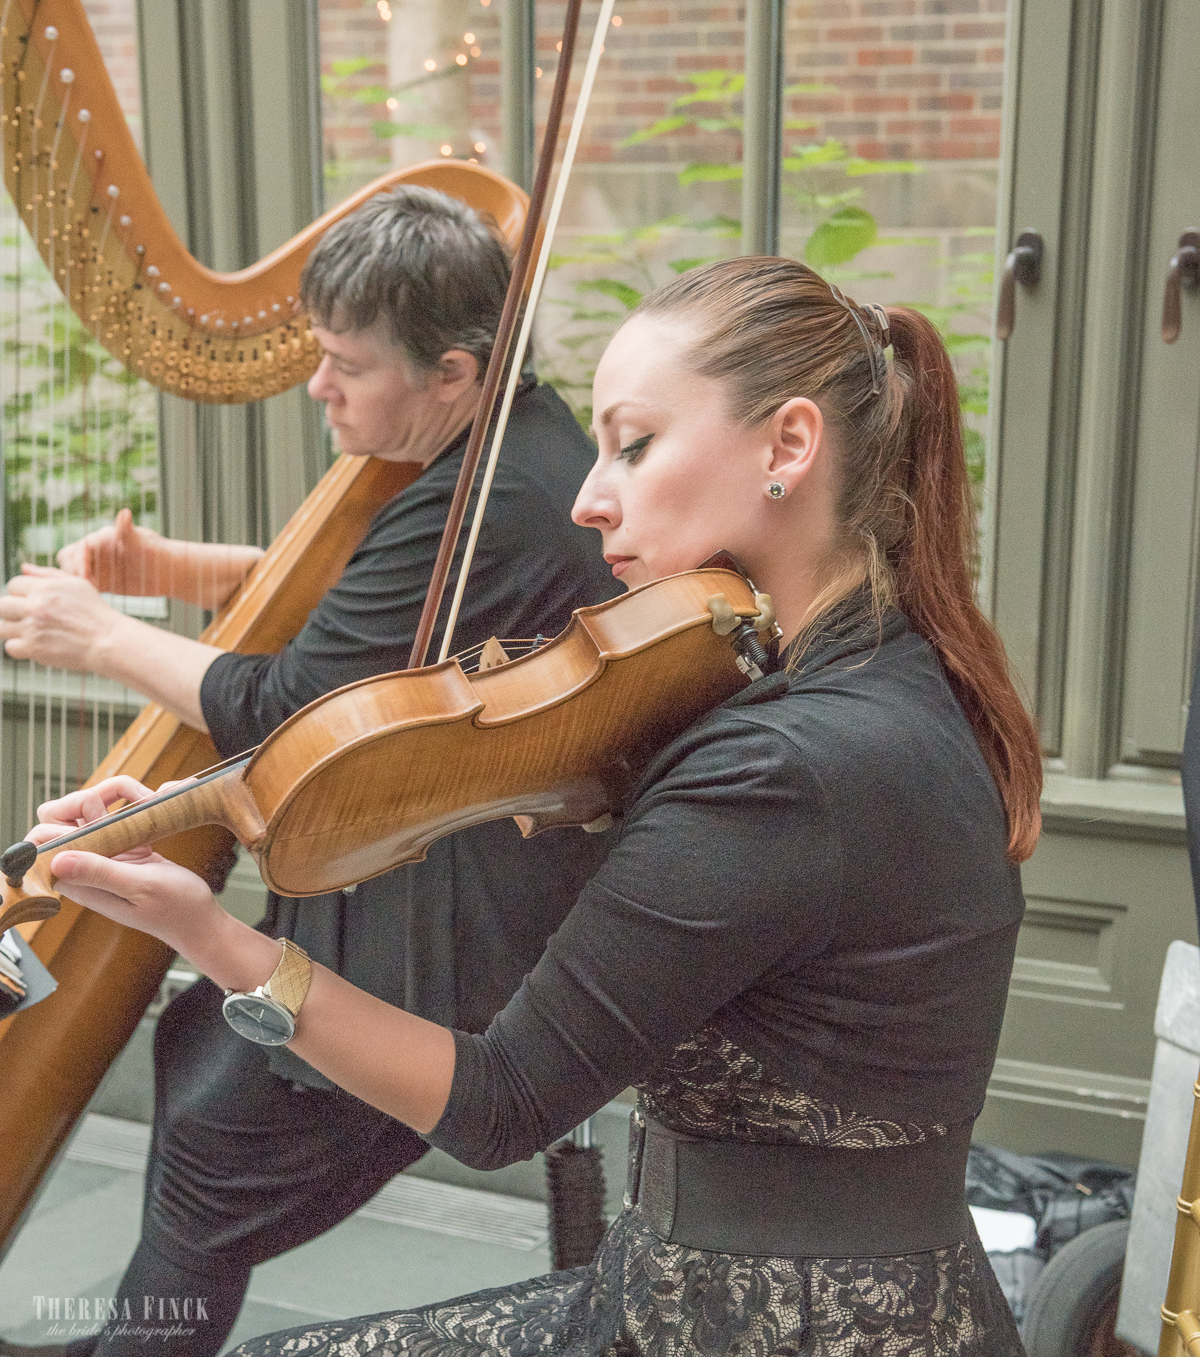 White Pines Harp and Violin Duet performing prelude music for a wedding ceremony in Rochester, Michigan. Captured by  Theresa Finck Photography